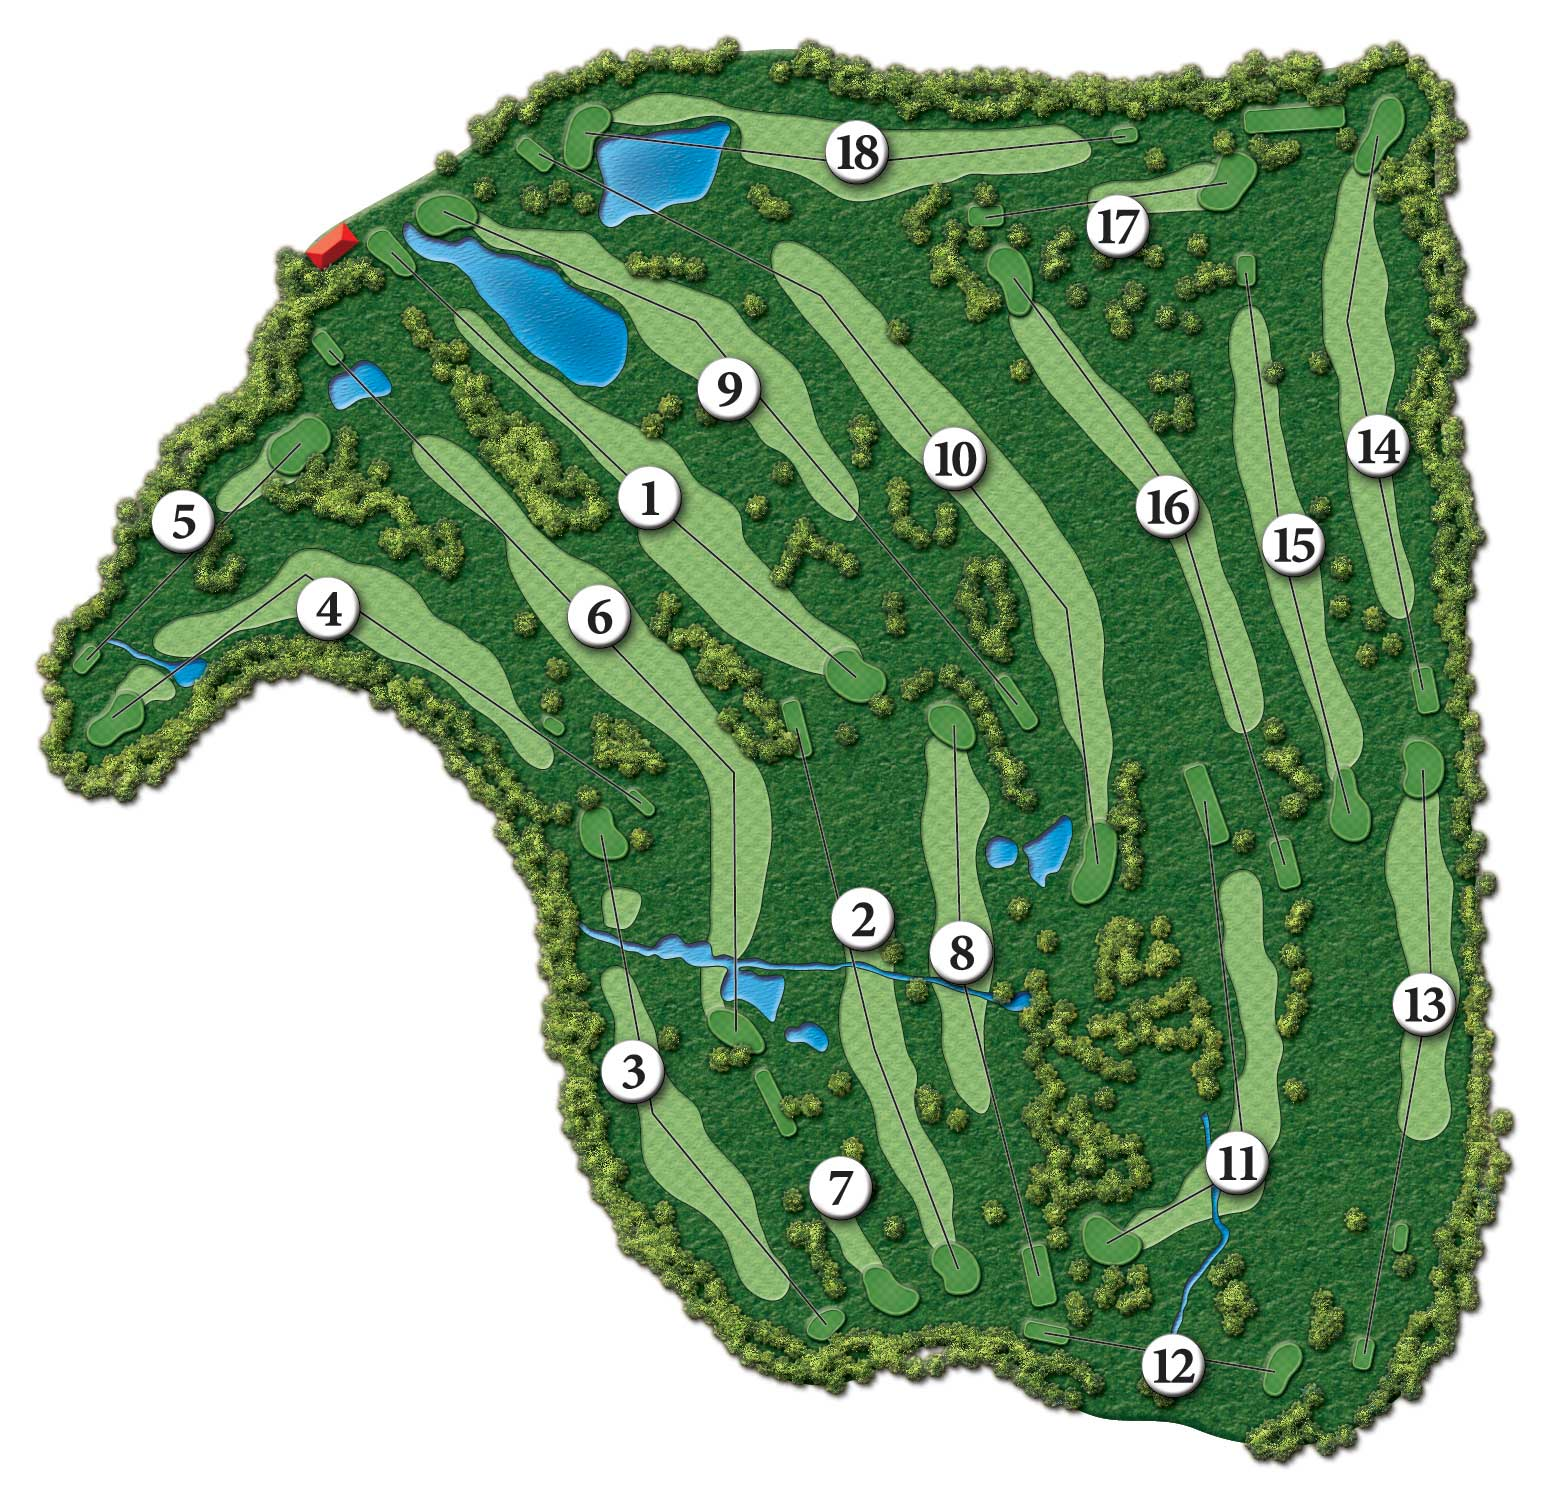 Image of the Course Map for Tamarack Golf Club.